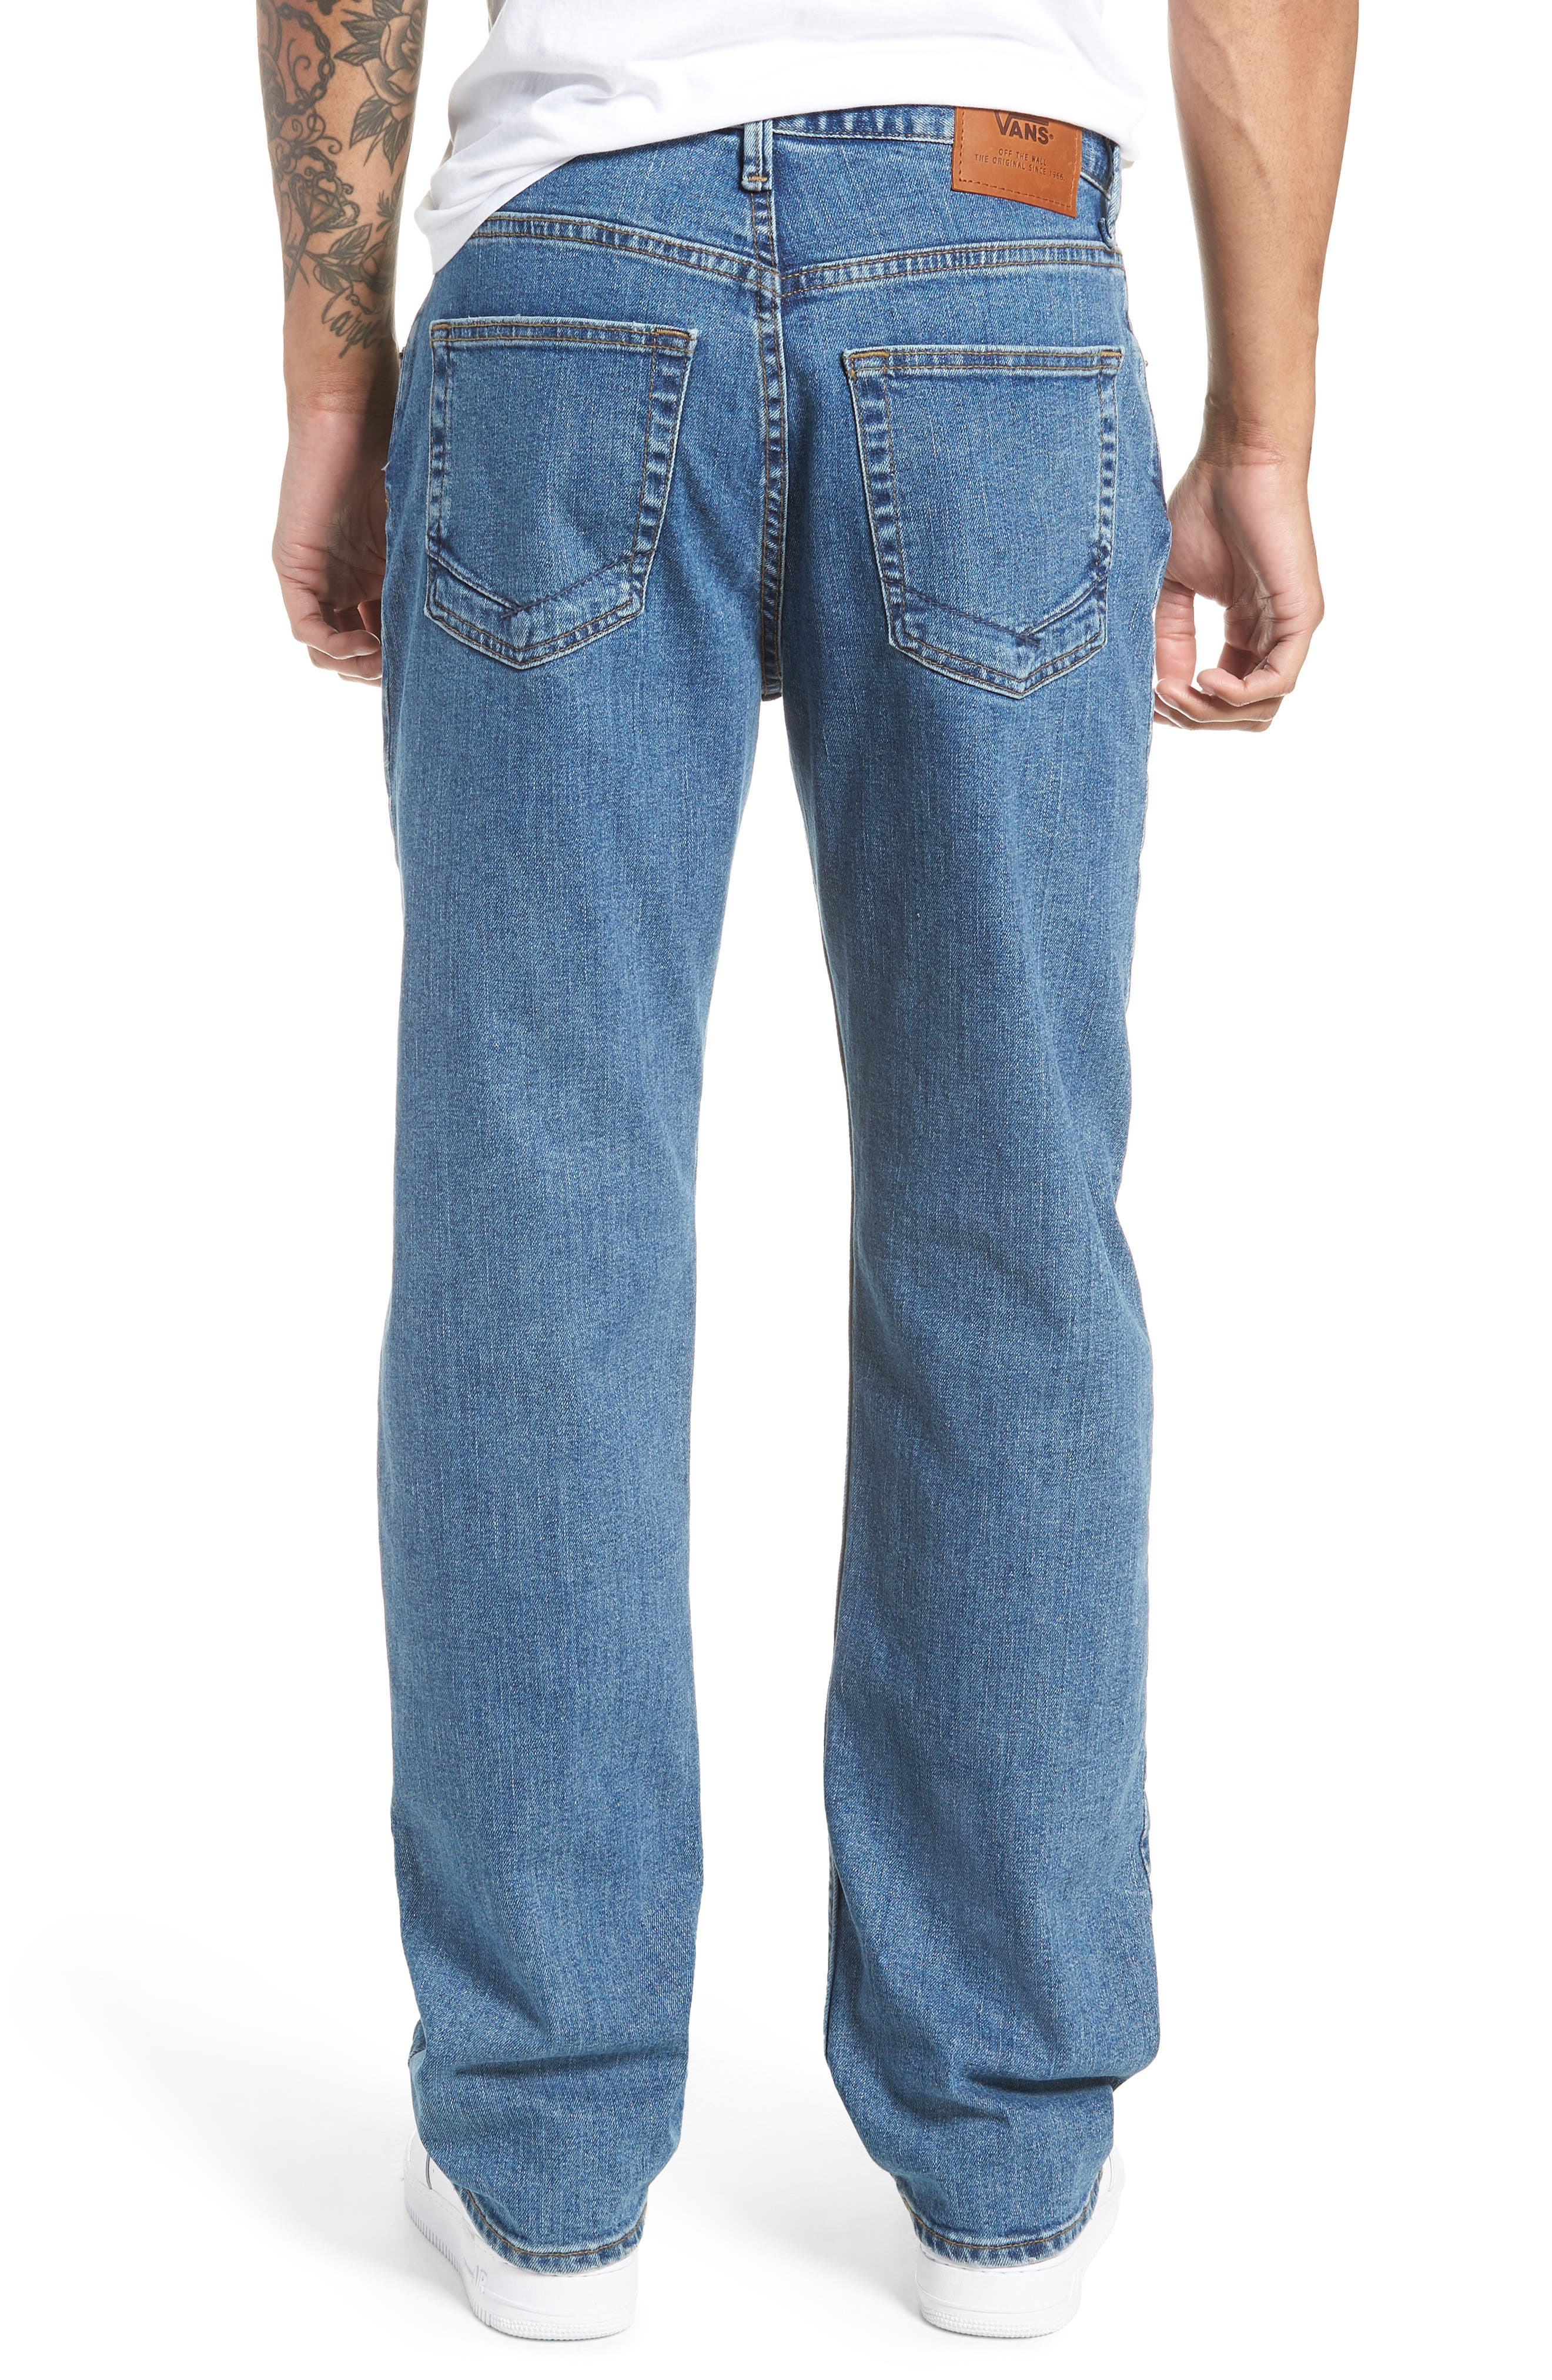 V96 Relaxed Fit Jeans,                             Alternate thumbnail 2, color,                             STONE WASH